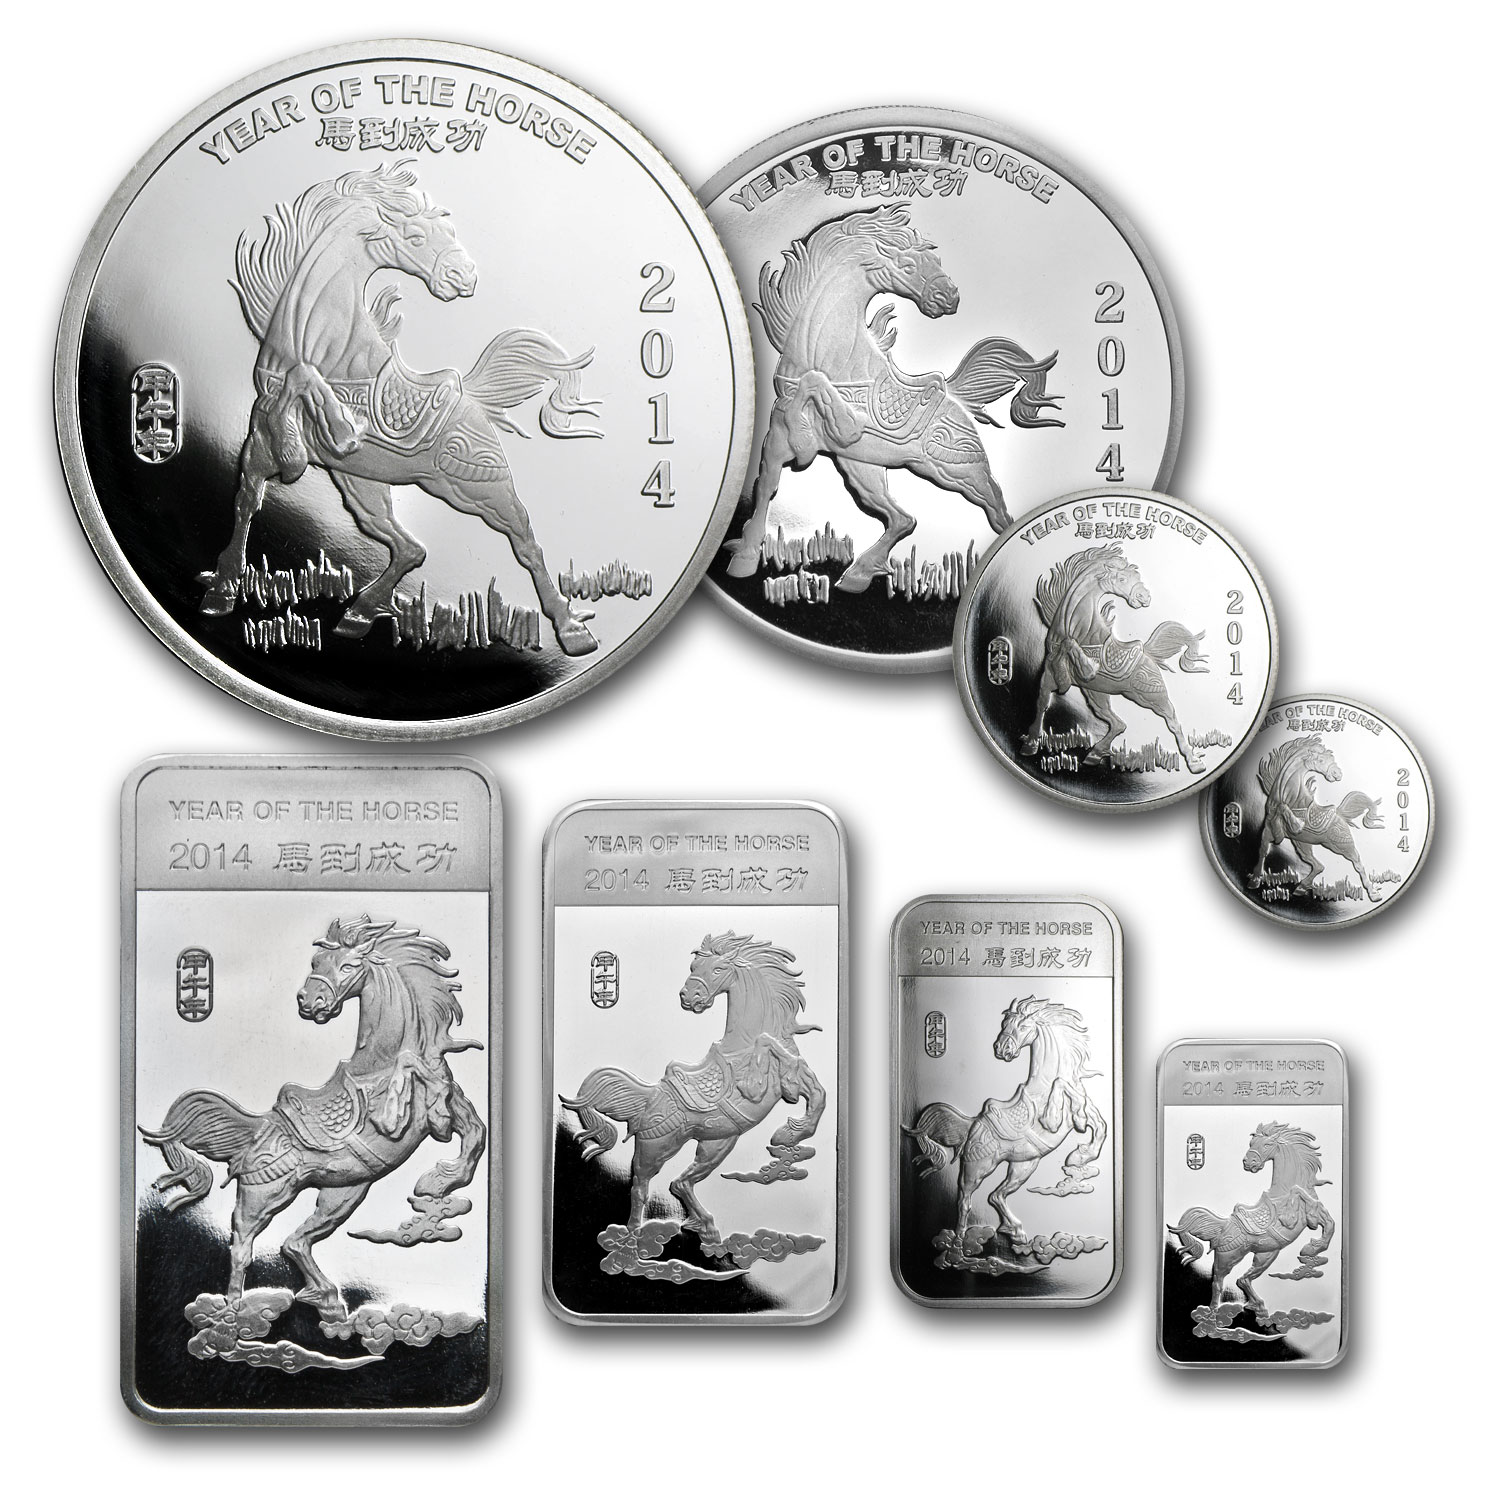 Year of the Horse 9-Piece Silver Set .999 Fine